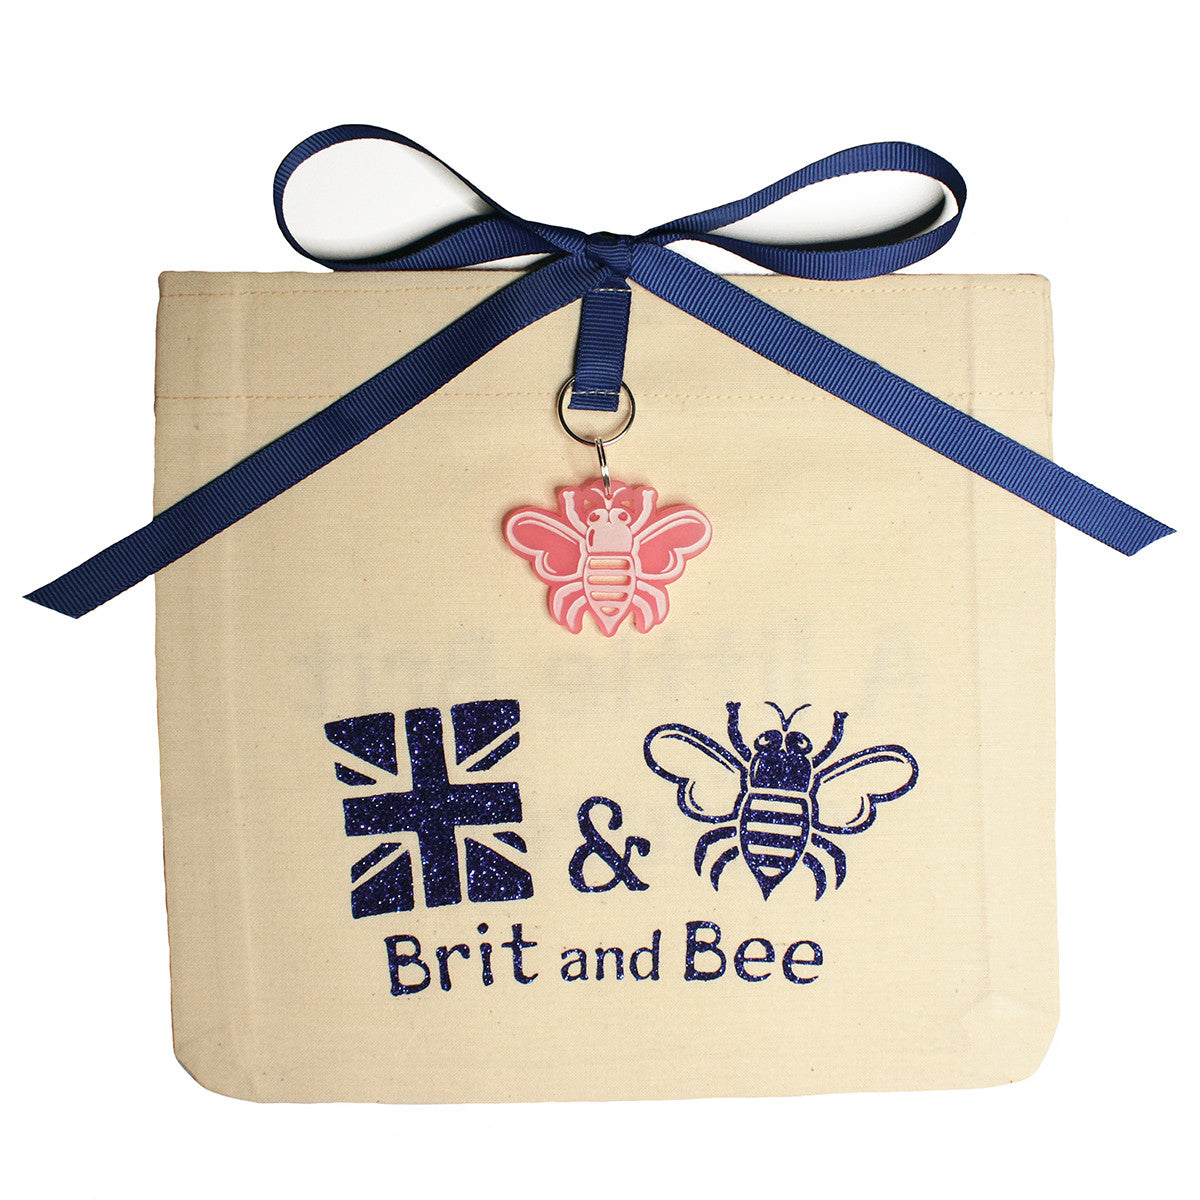 Brit and Bee Sorority Monogram Coaster - Delta Gamma